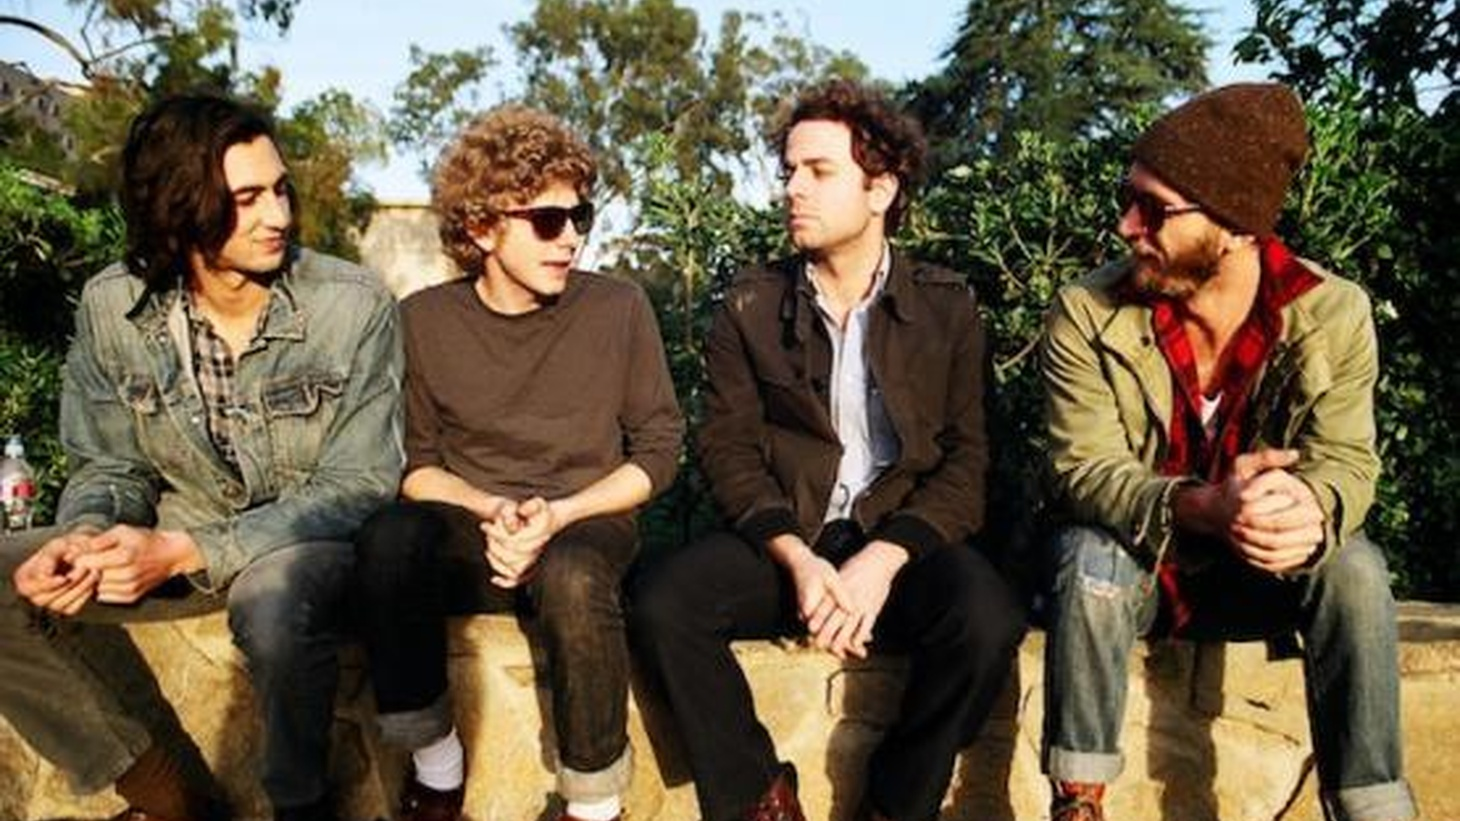 Rolling Stone magazine gives Dawes four out of five stars and they count Bob Dylan and Jackson Browne among their fans.